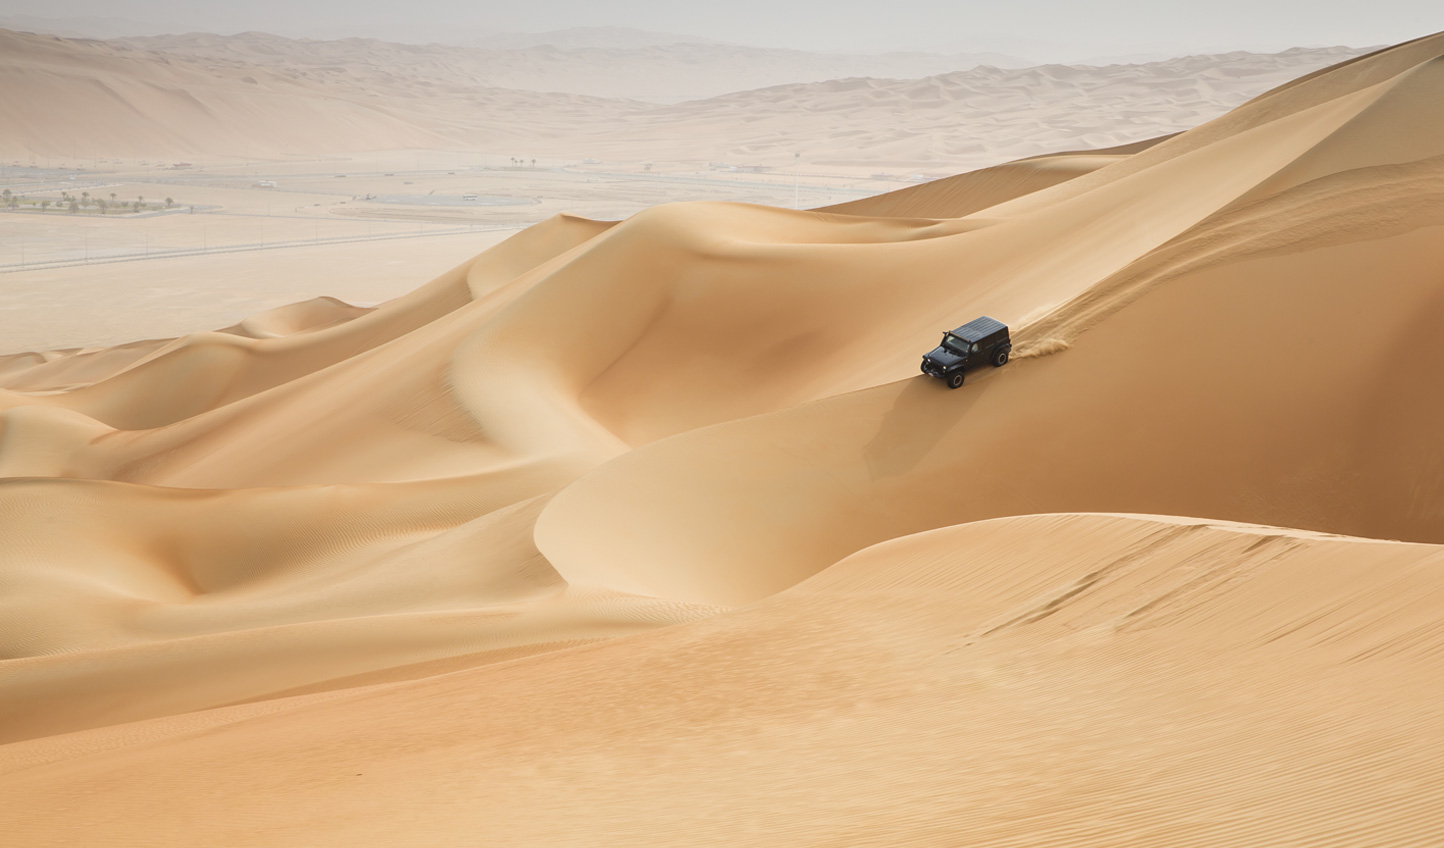 Get behind the wheel and bash across the dunes